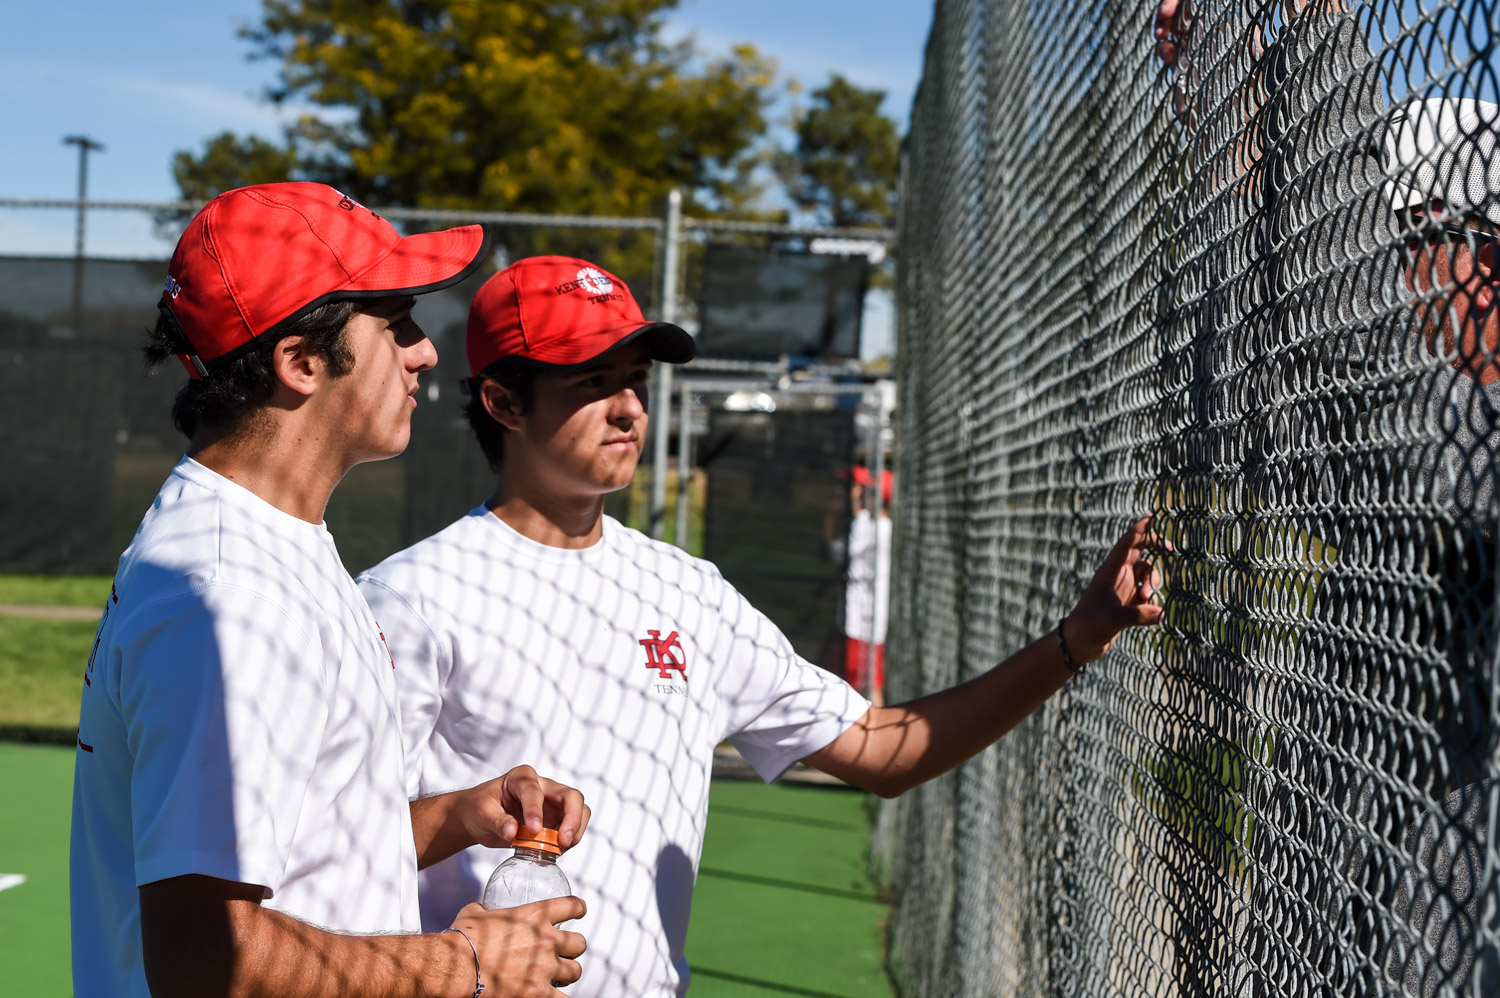 tennis payers consult with coach